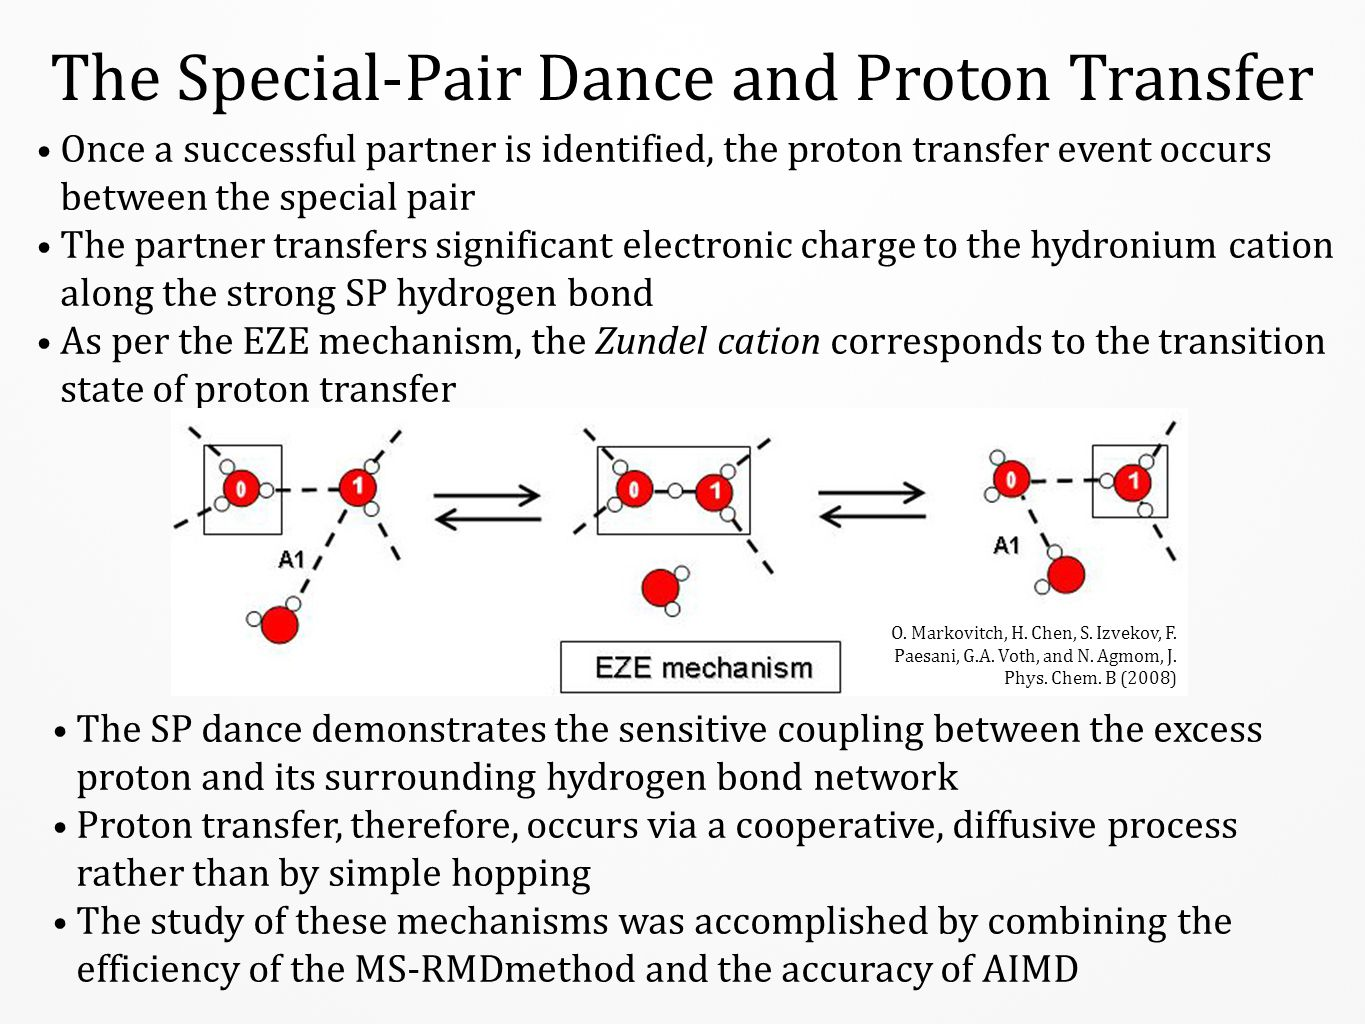 The Special-Pair Dance and Proton Transfer